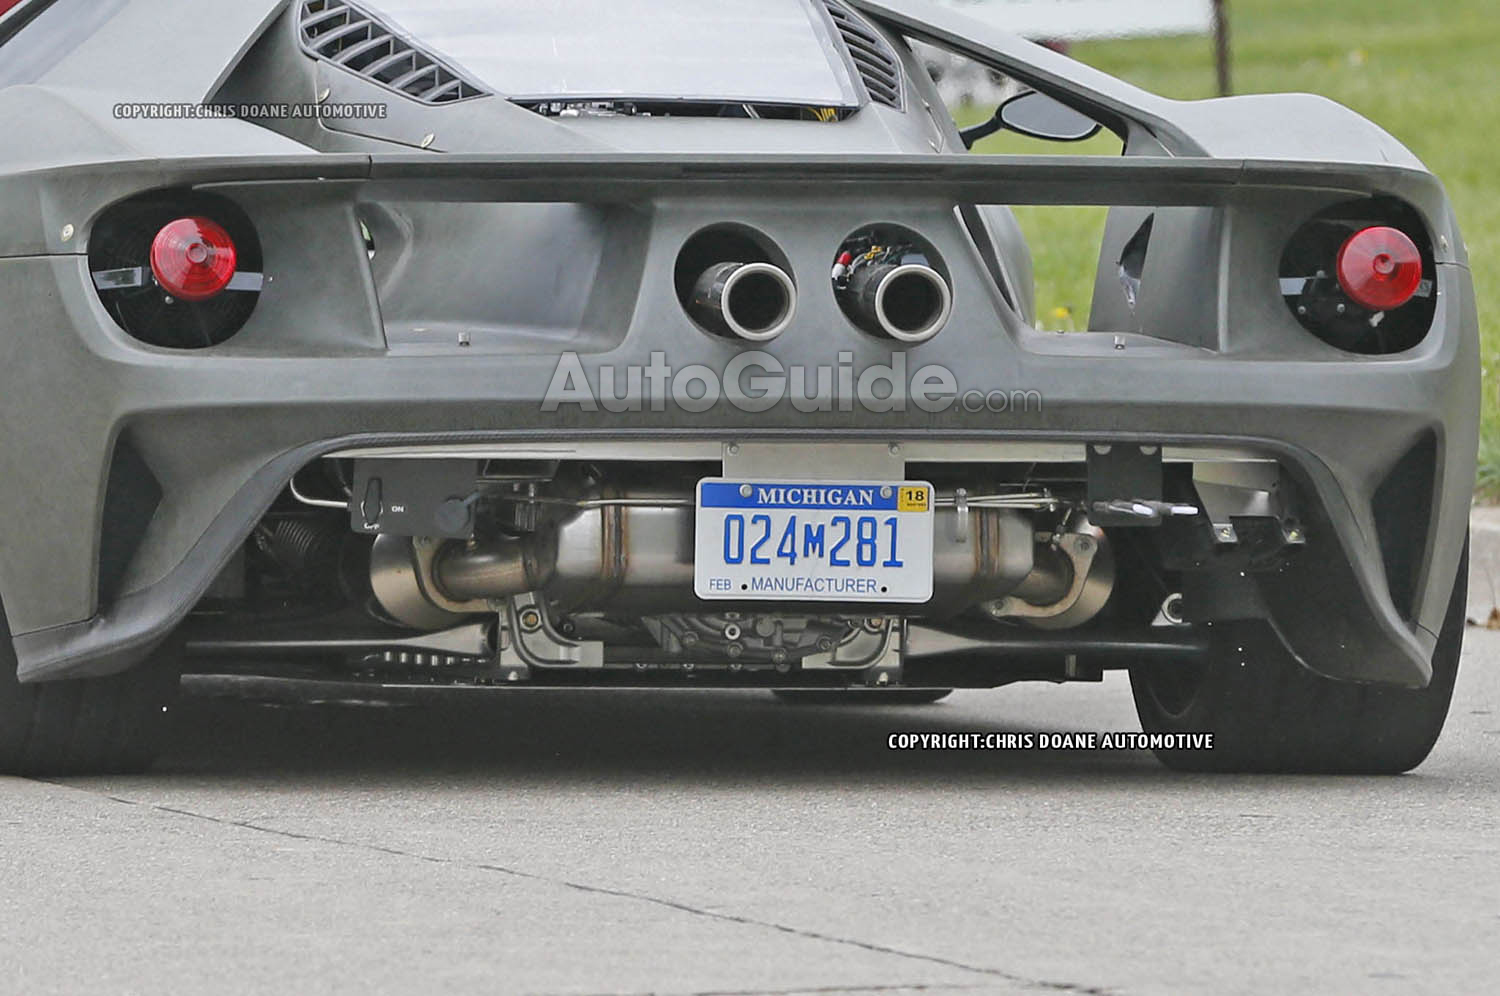 2017 Ford Gt Spied Starting Spring Training News Nsx Fuse Box Spy Photos 23